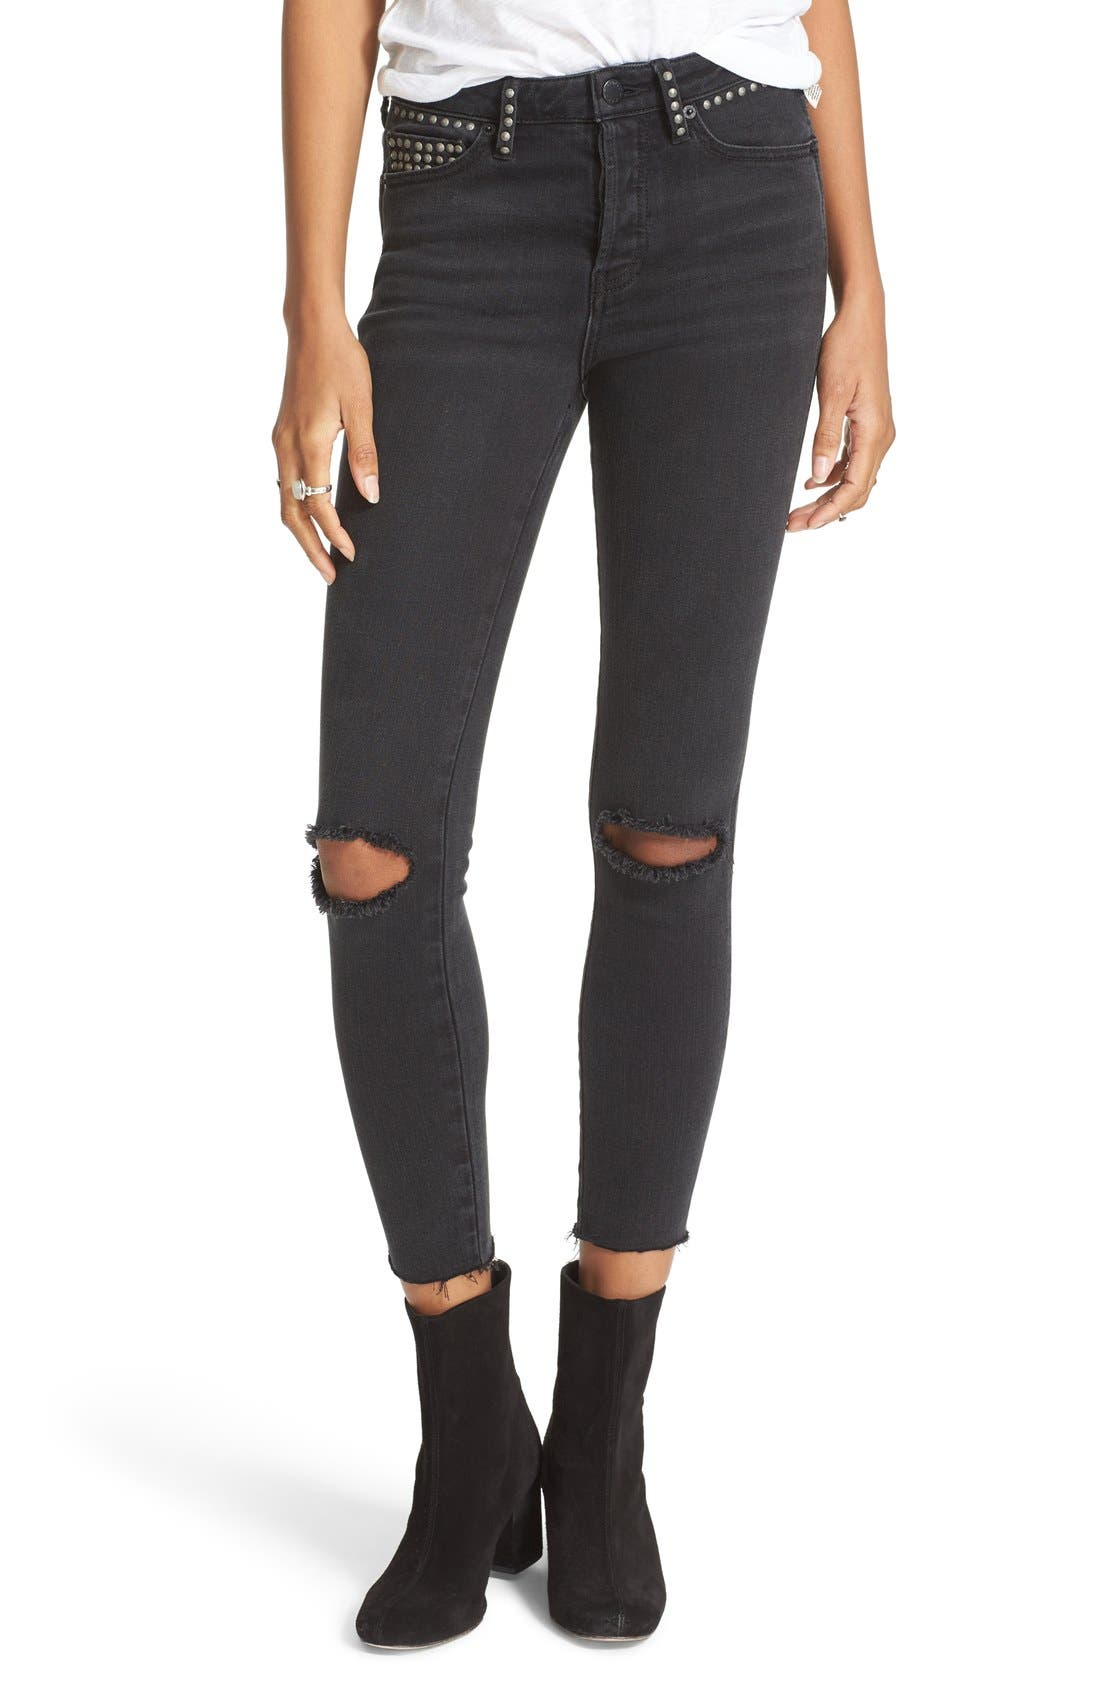 Alternate Image 1 Selected - Free People Ripped Skinny Jeans